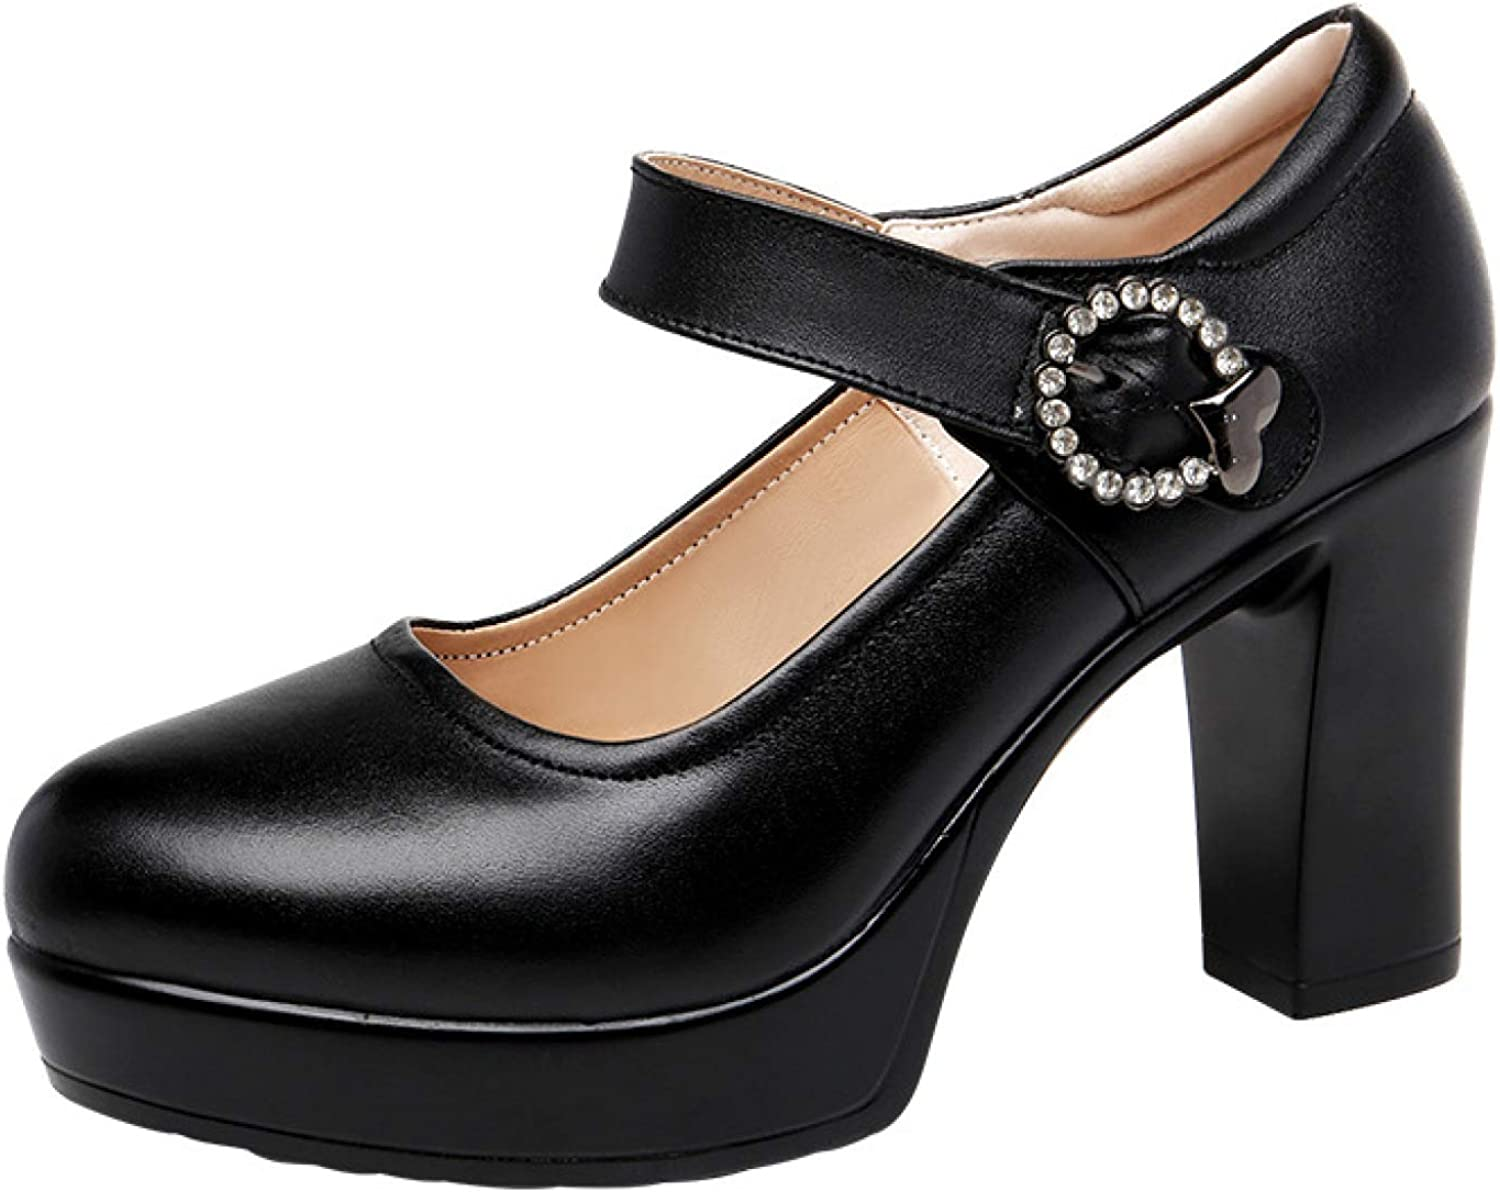 Women's Retro 4 years warranty Shockproof Office Dress Online limited product Relaxed Round Comfy Pumps